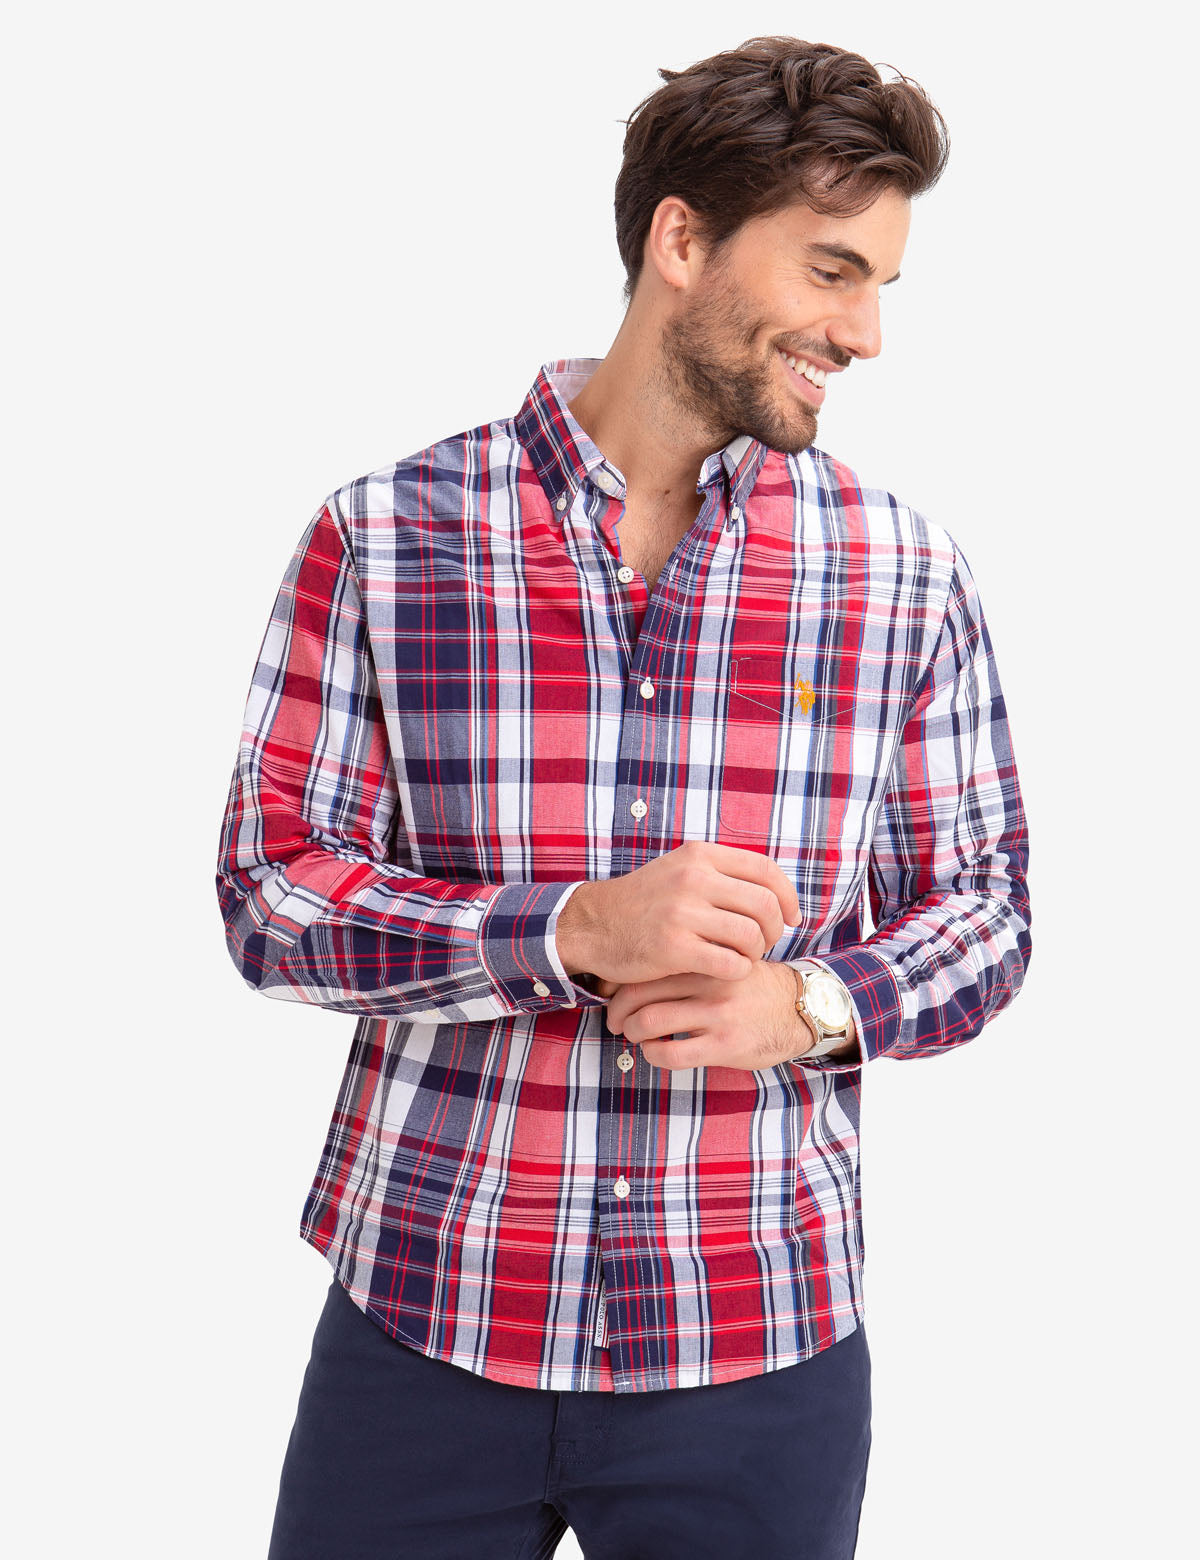 NO-TUCK PLAID POPLIN SHIRT